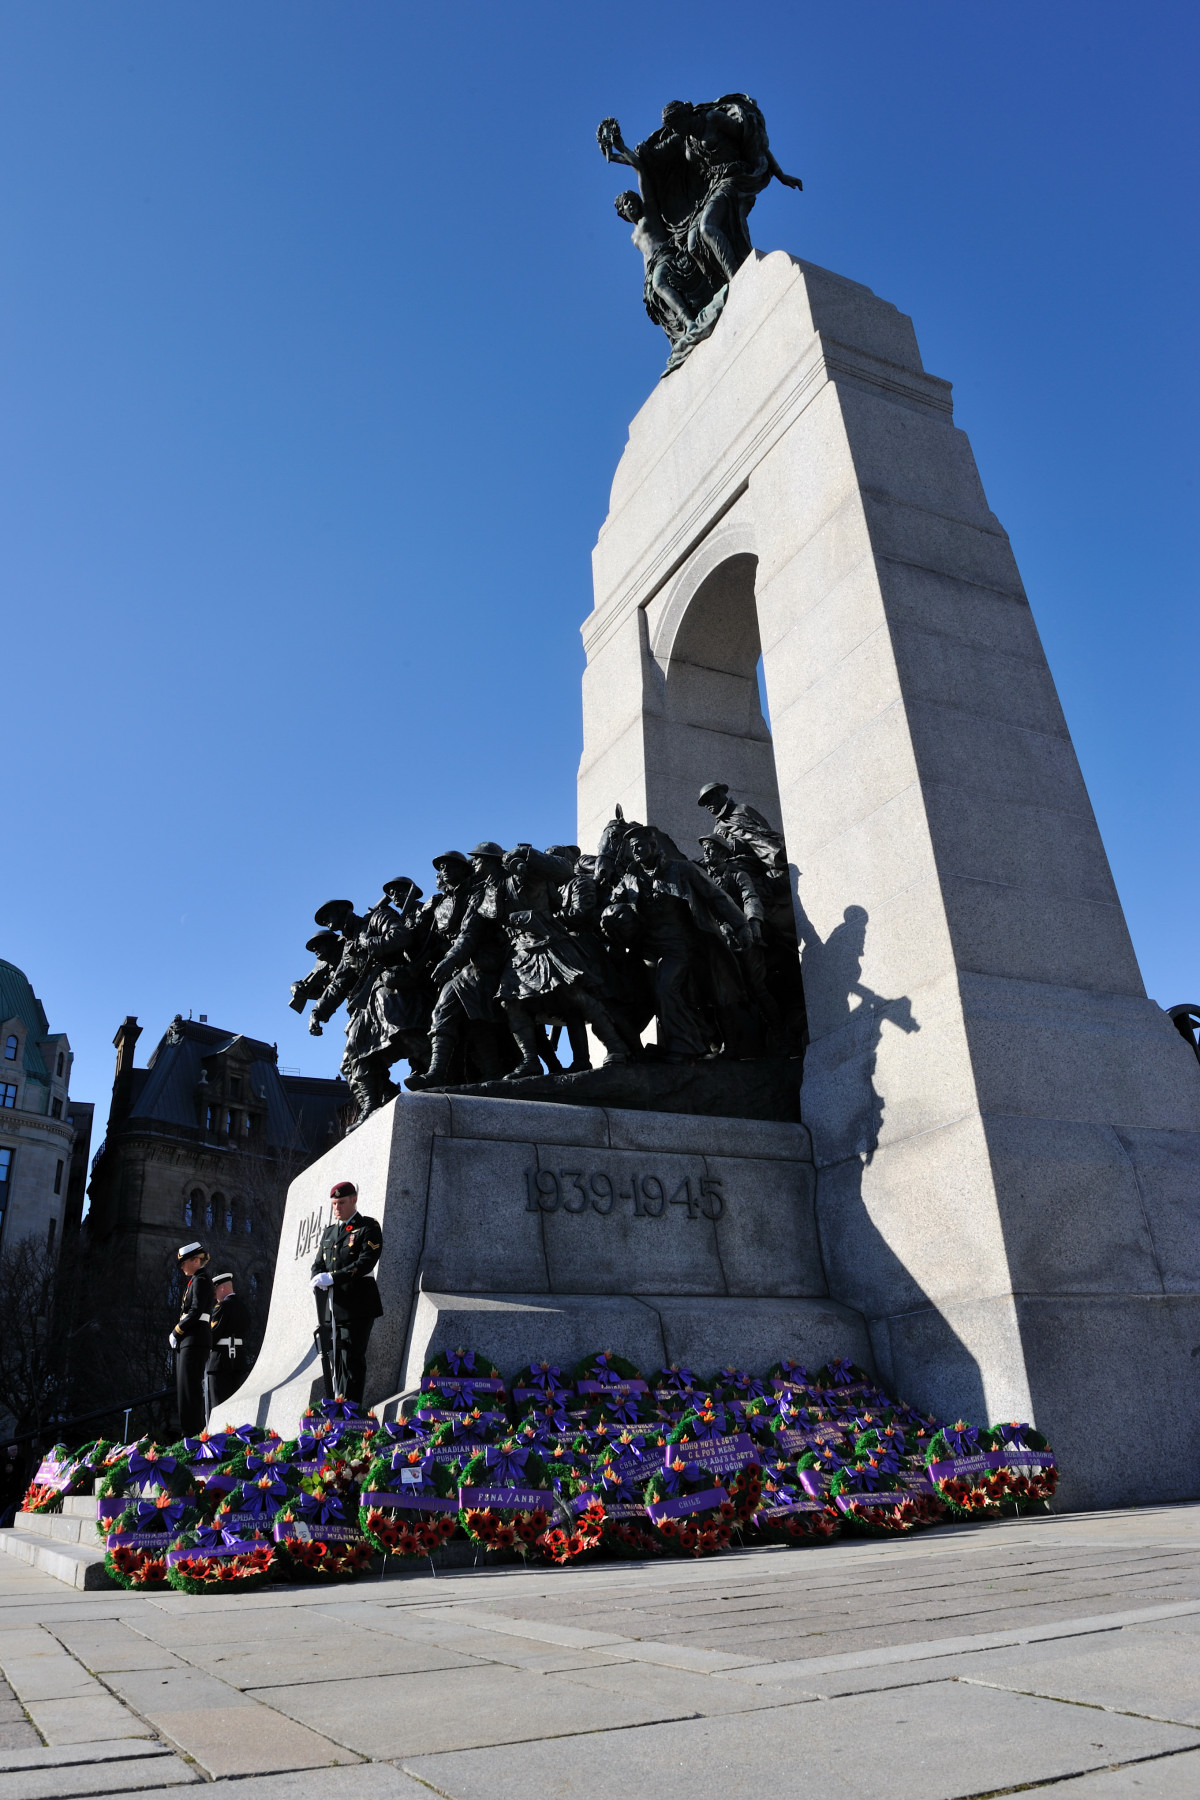 Dozens of diplomats laid wreaths along the sides of the monument.